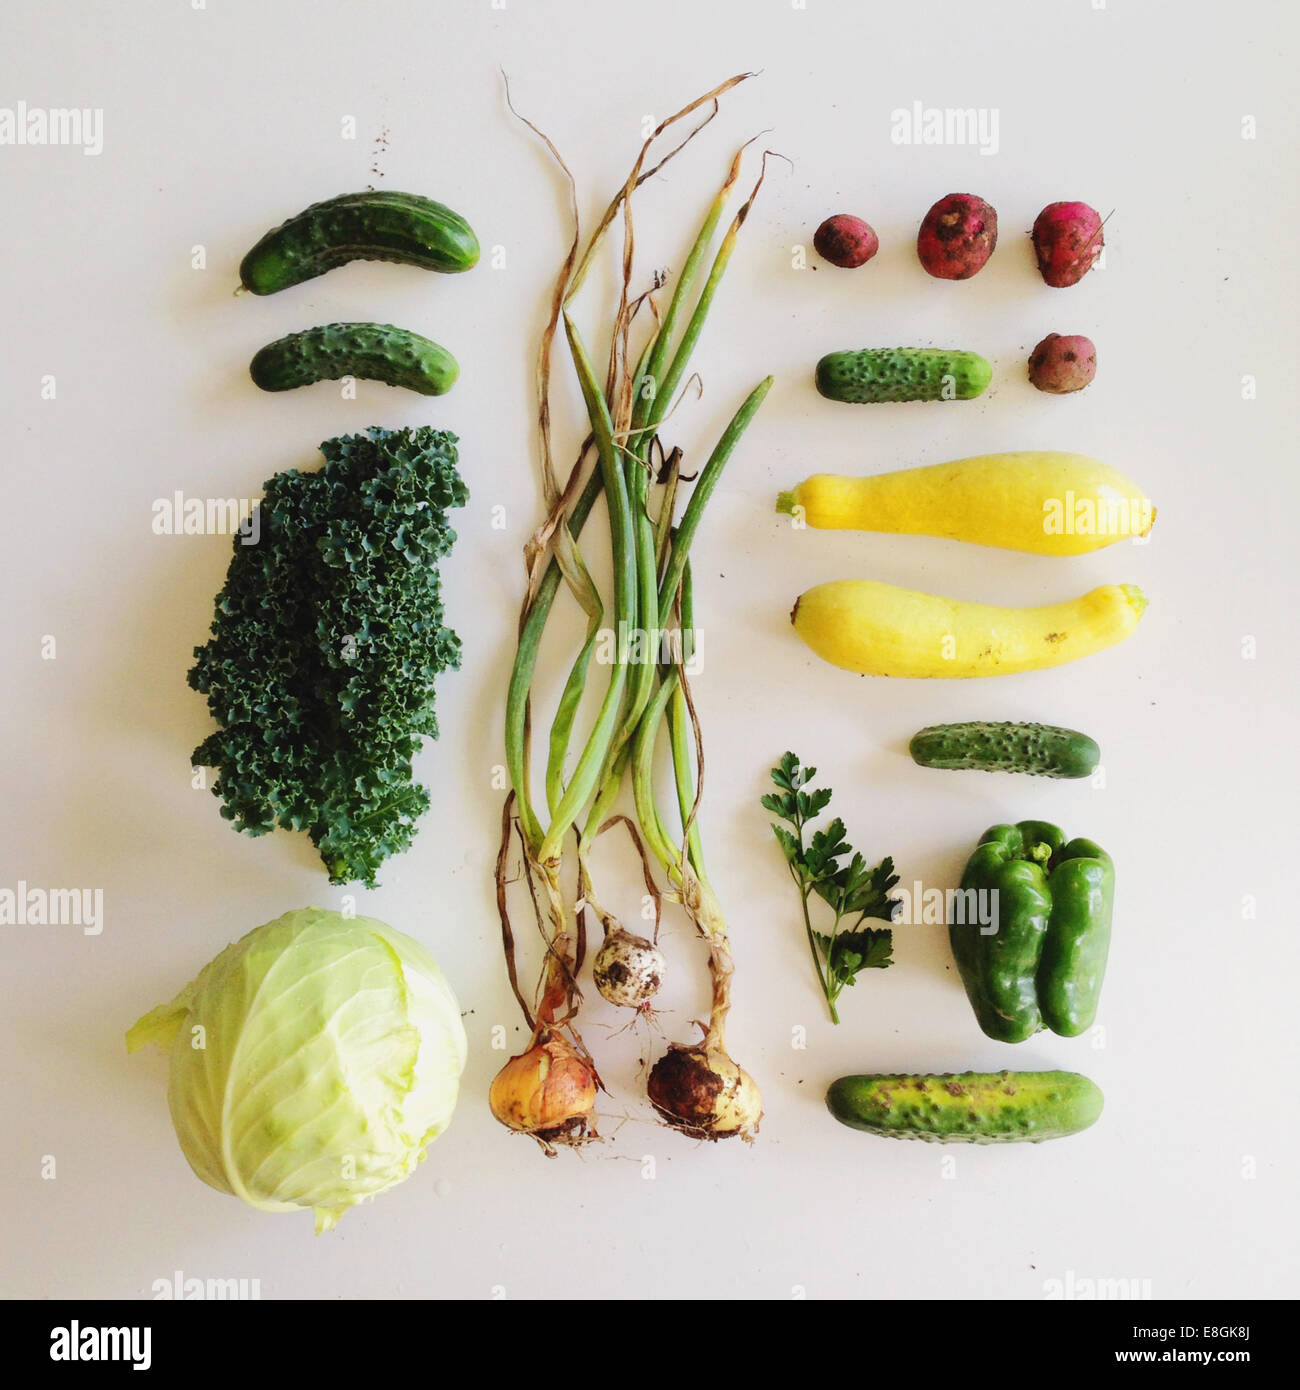 Studio shot of freshly picked vegetables - Stock Image